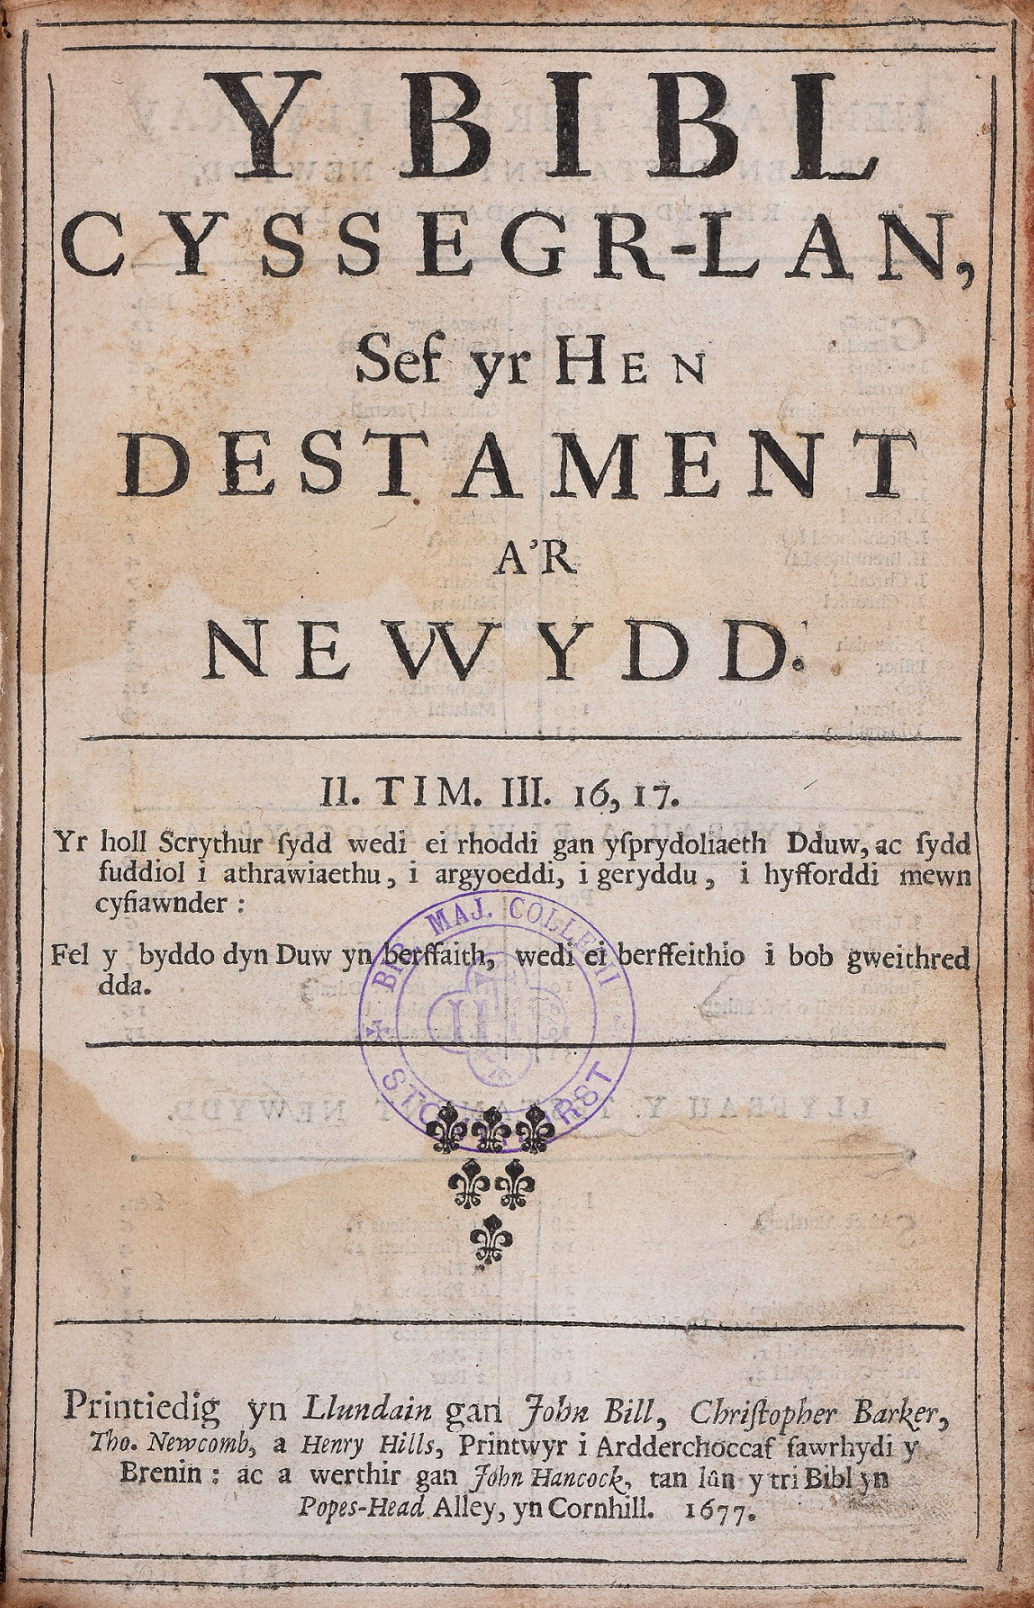 The title page of a Welsh bible